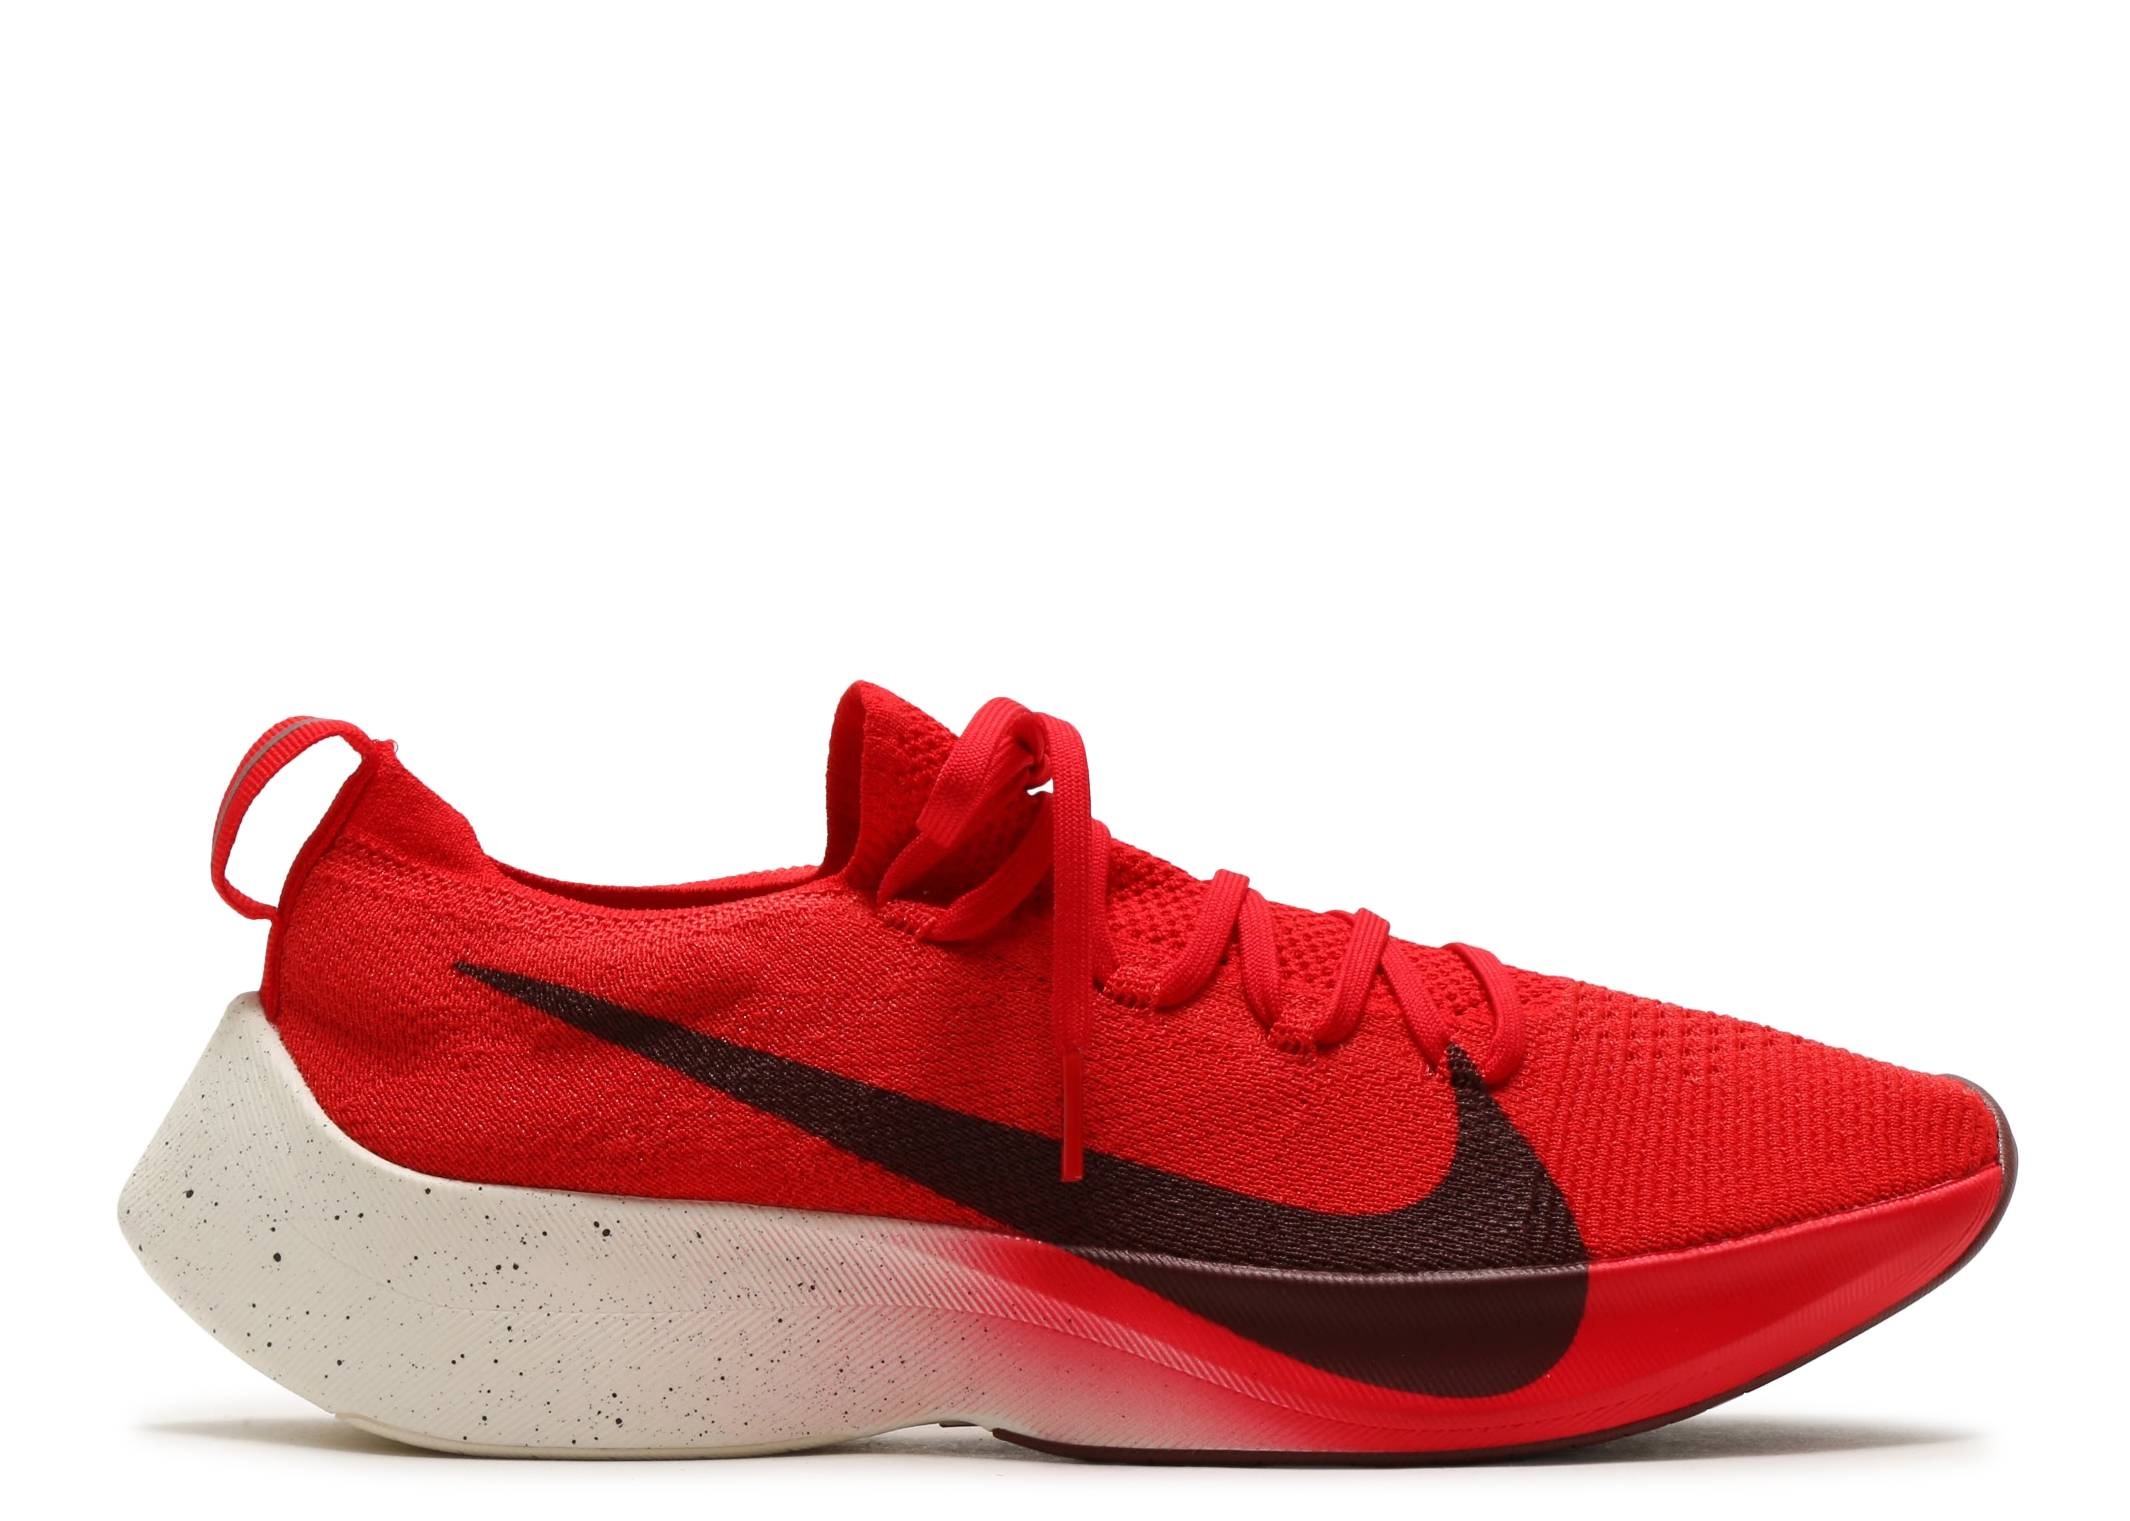 8f827e322819 Vapor Street Flyknit - Nike - aq1763 600 - university red dark team ...